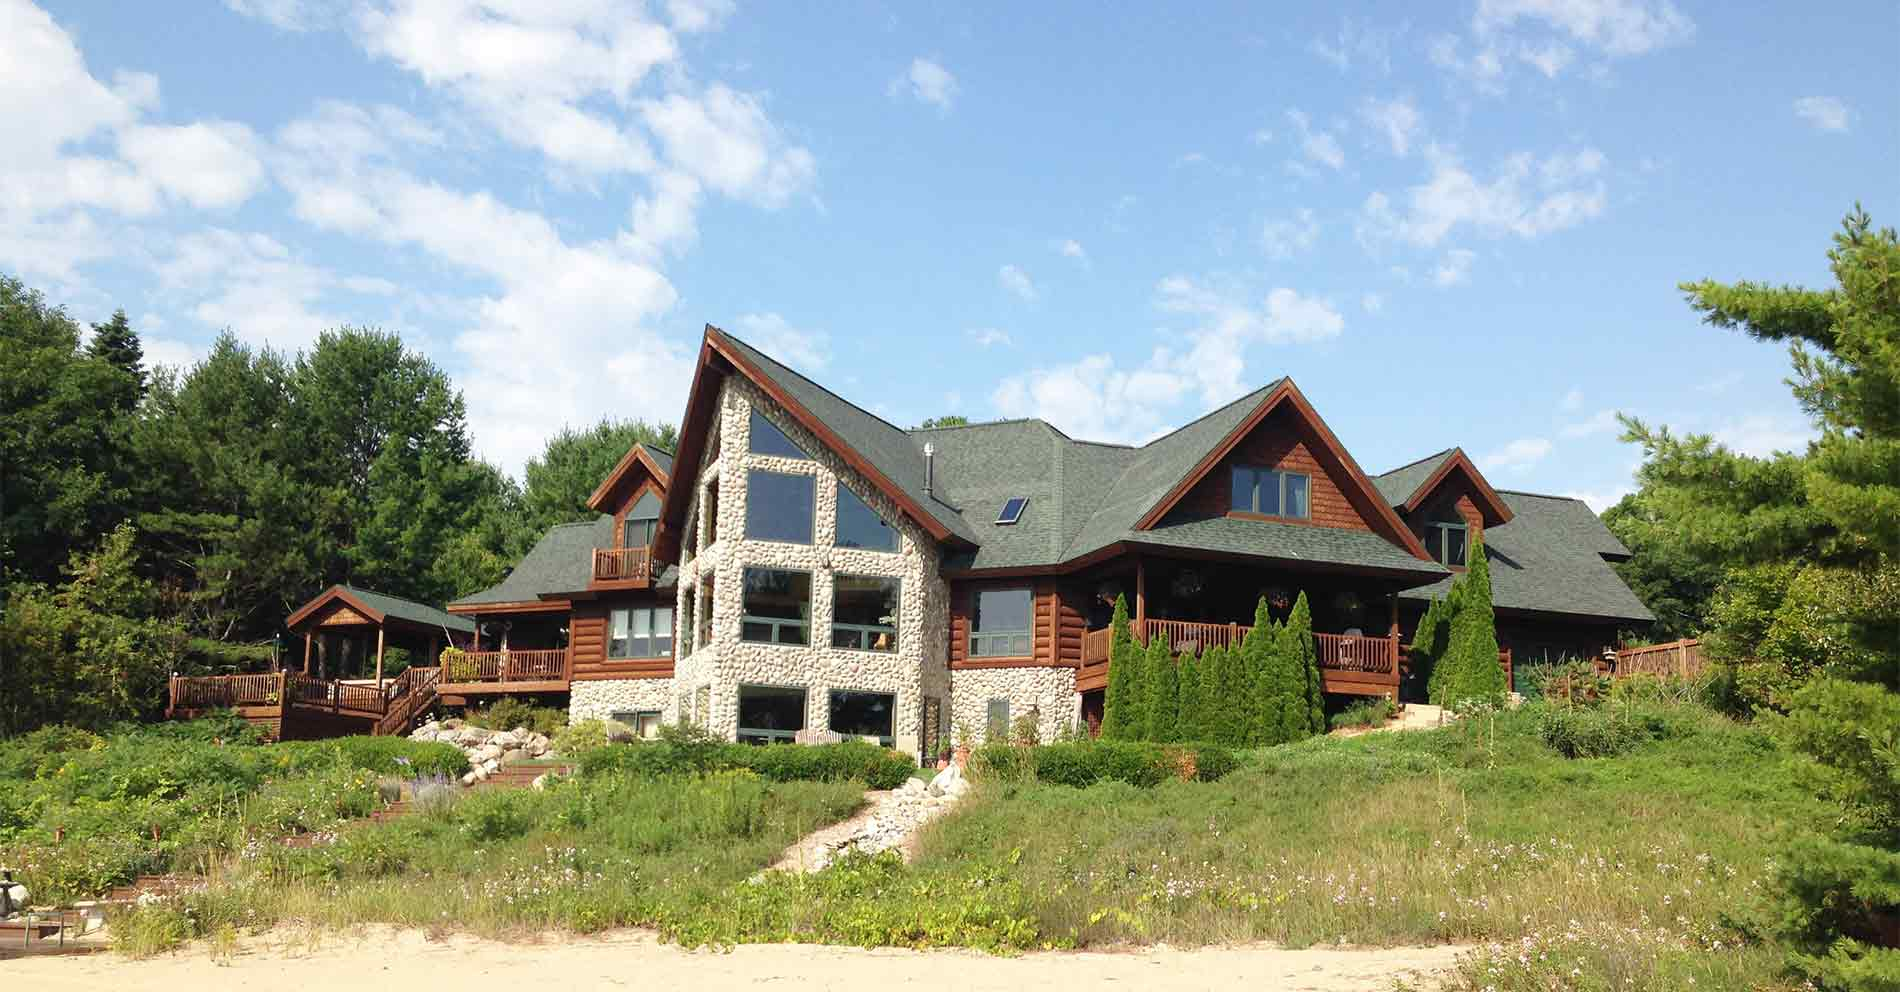 799 US 23 - Harrisville, Michigan - $1,900,000 USD